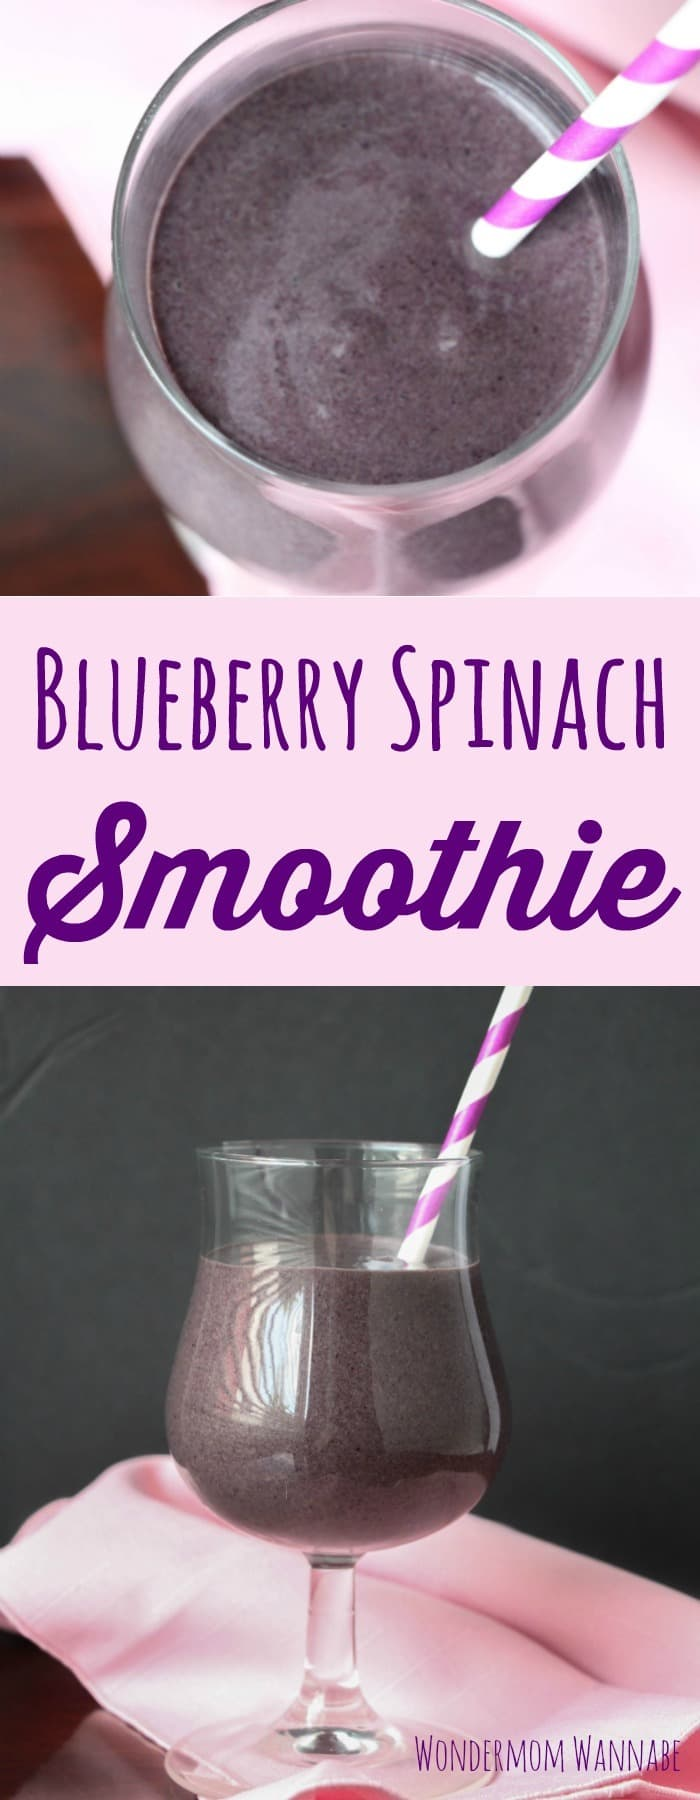 Super easy and yummy recipe for a blueberry spinach smoothie - rich in antioxidants!